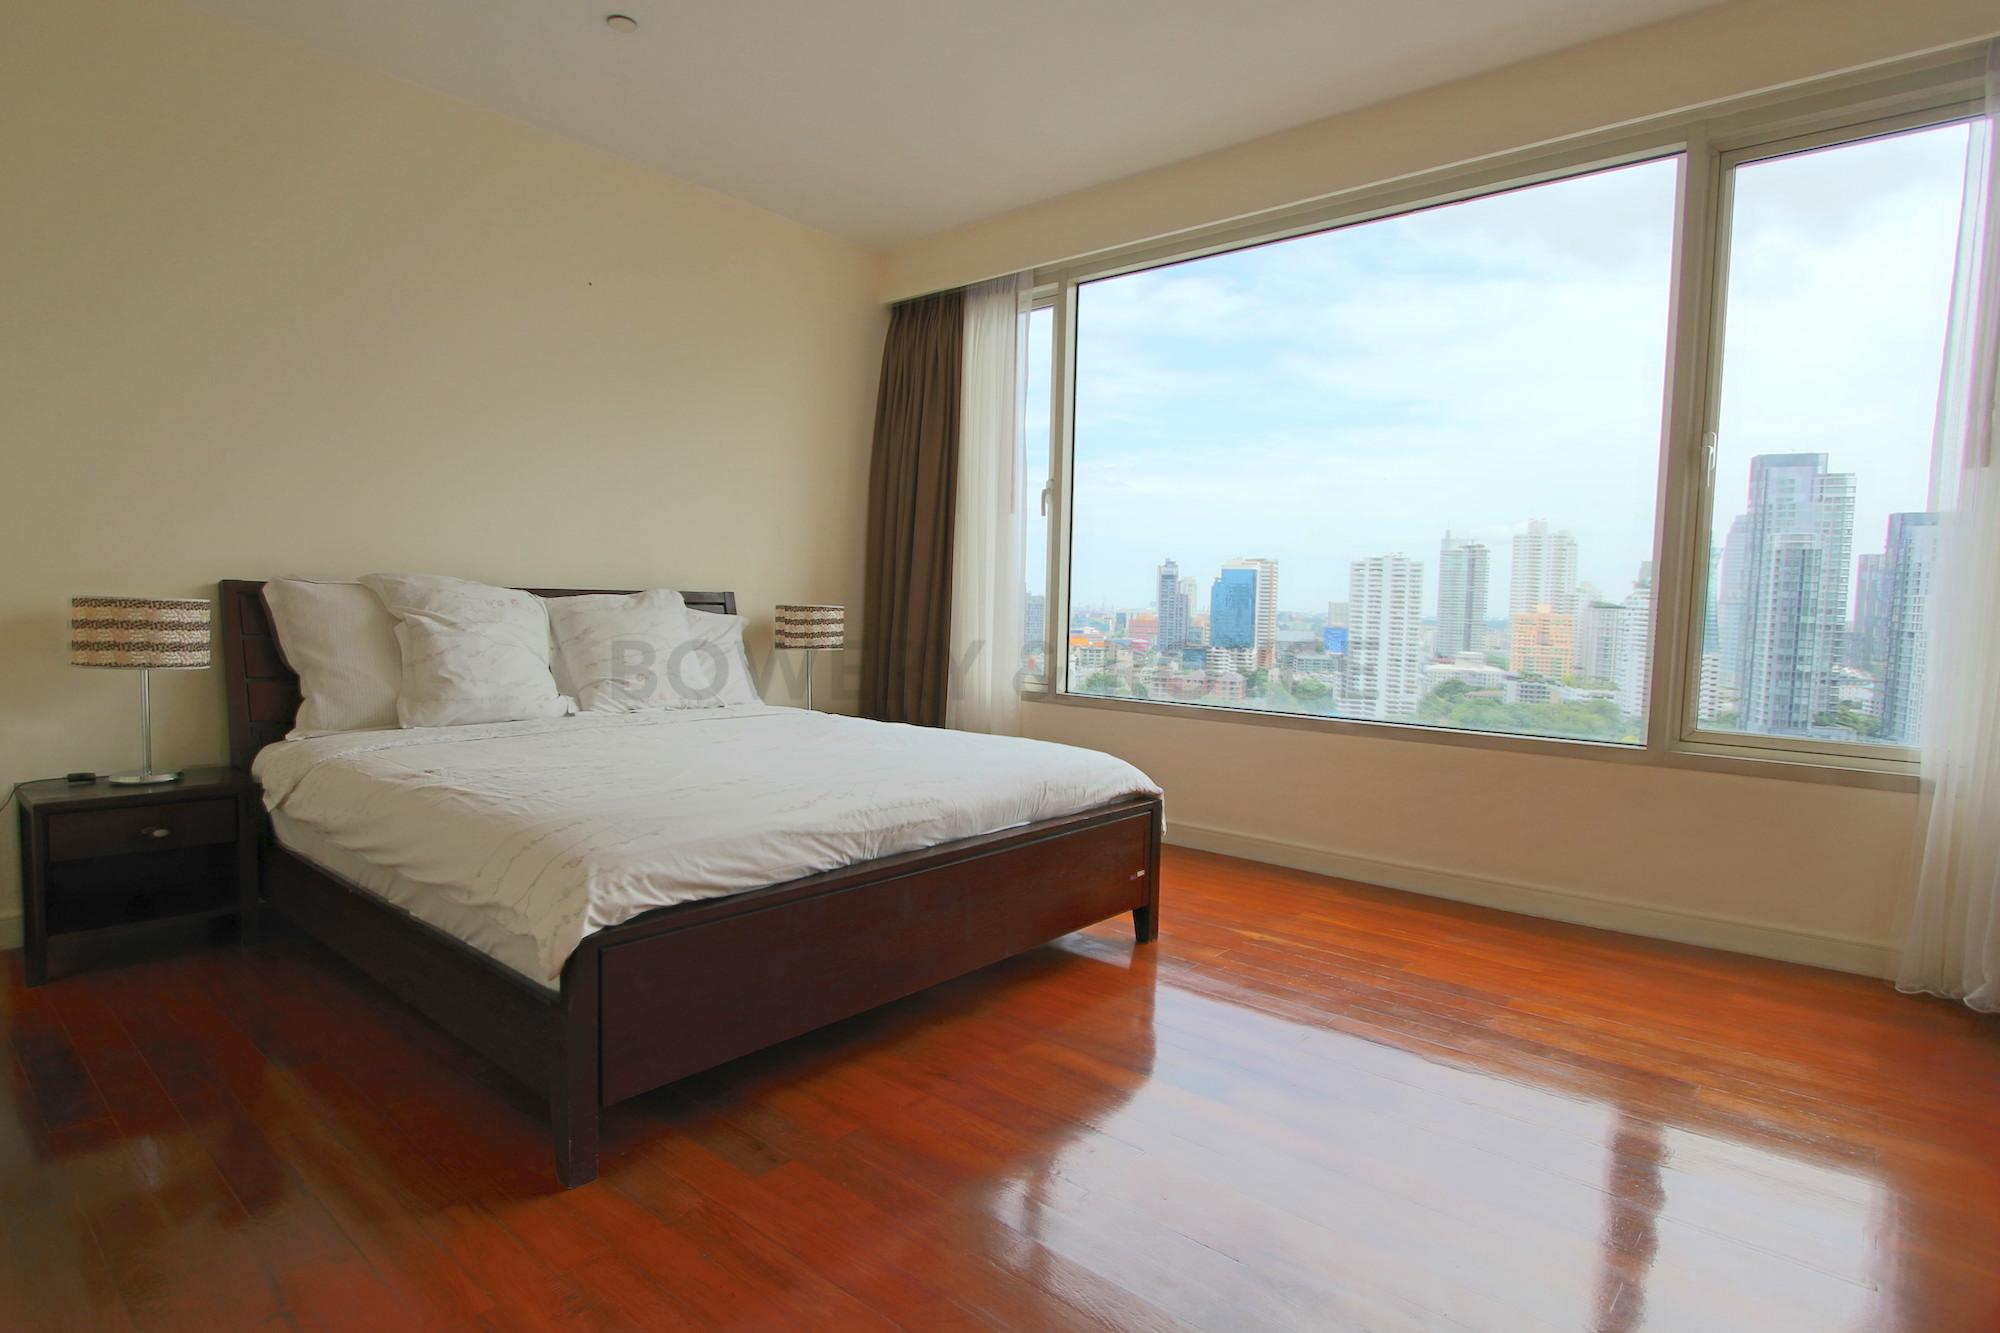 Great-Location-Three-Bedroom-Condo-for-Rent-in-Thong-Lor-9